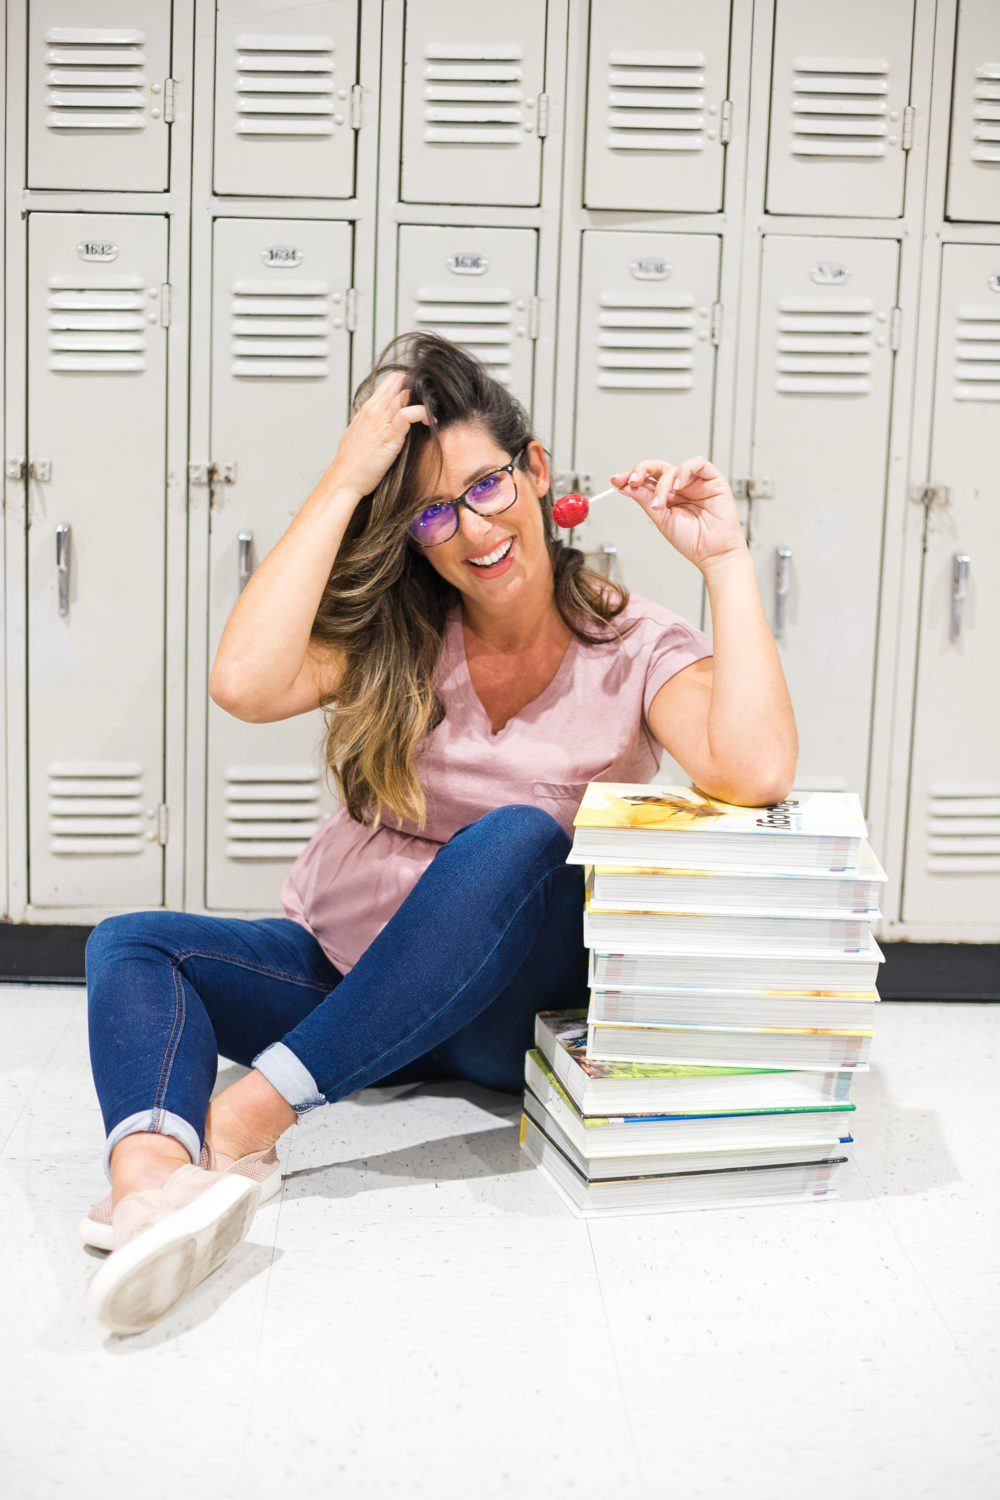 Back to School Eye Exam: How to Prepare your Child for a Successful Academic Year | Back to School Eye Exam: How to Prepare your Child for a Successful Academic Year by popular Florida lifestyle blog, Fresh Mommy Blog: image of a woman sitting in front of some school lockers wearing a pair of blue light glasses, holding a sucker, and resting her elbow on a stack of books.